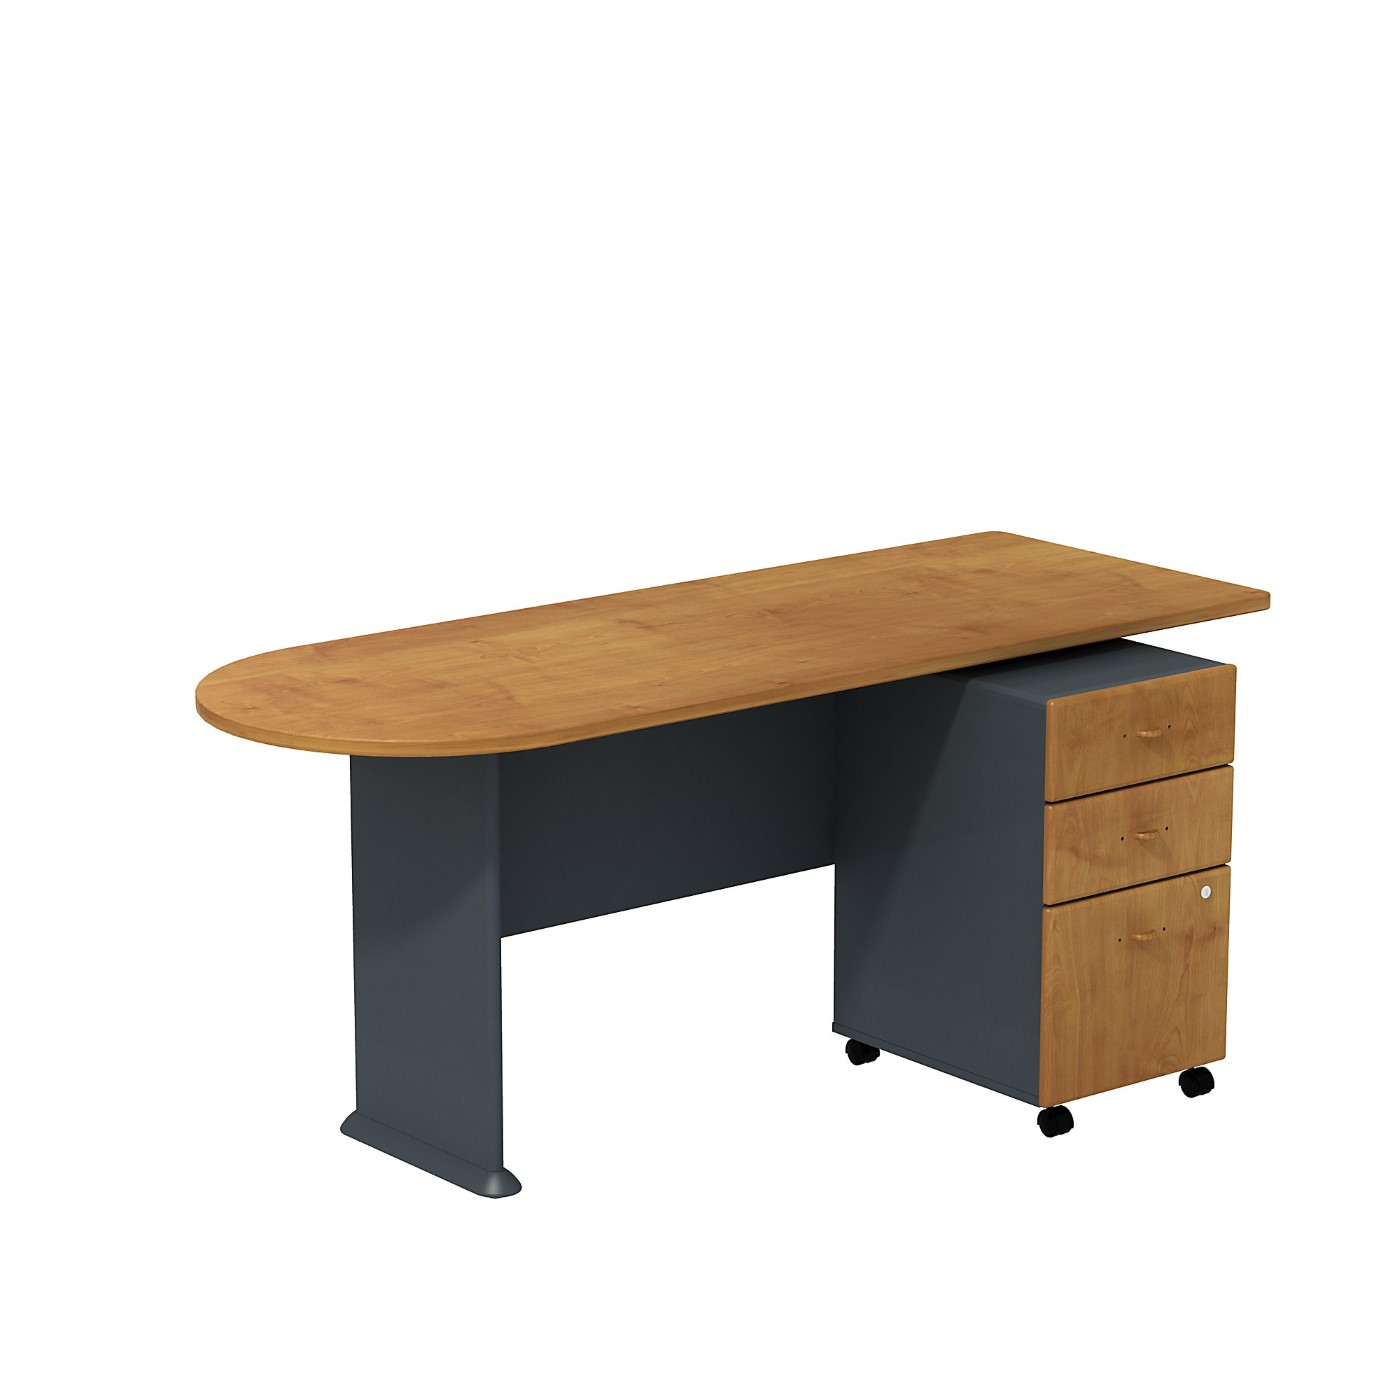 BUSH BUSINESS FURNITURE SERIES A PENINSULA DESK WITH 3 DRAWER MOBILE PEDESTAL. FREE SHIPPING